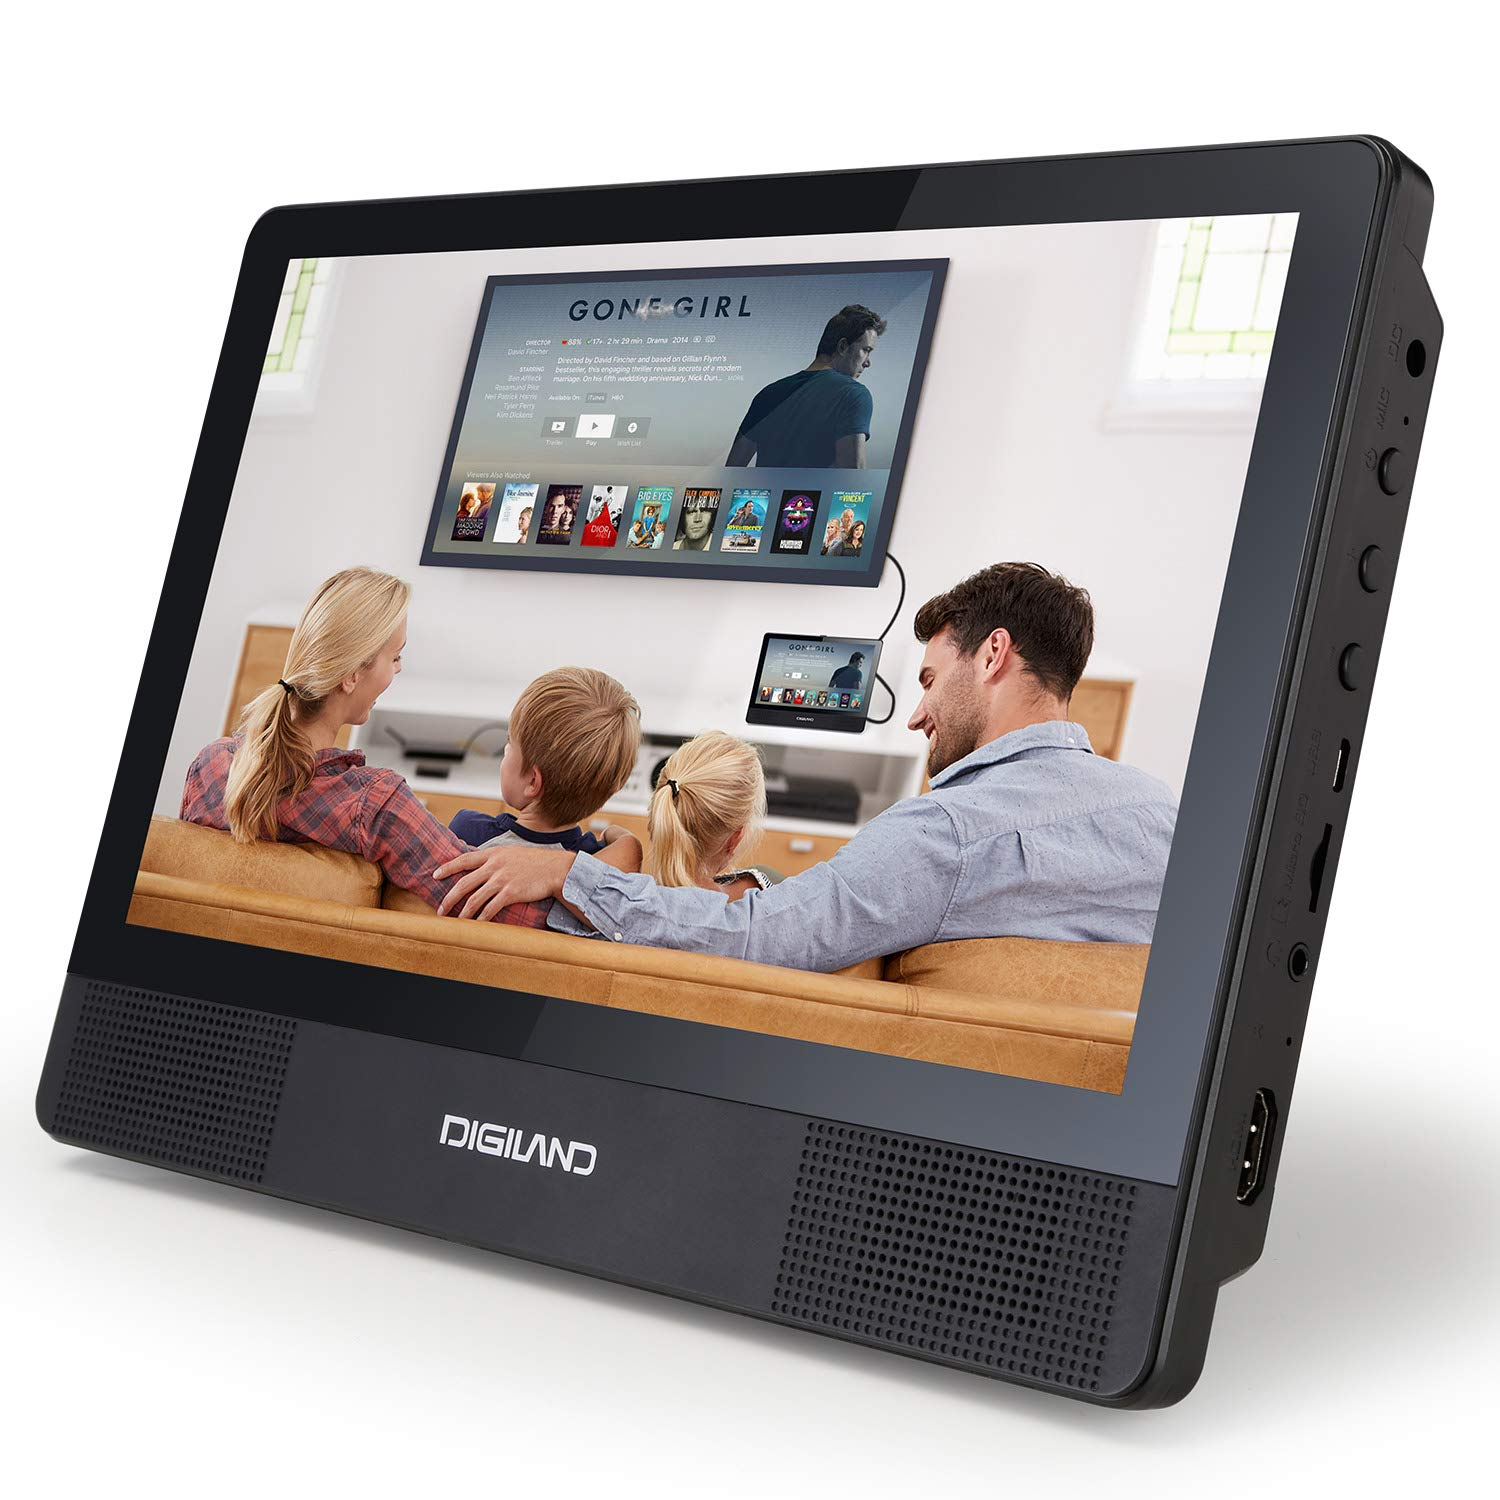 DigiLand DVD Player/Tablet Combo}